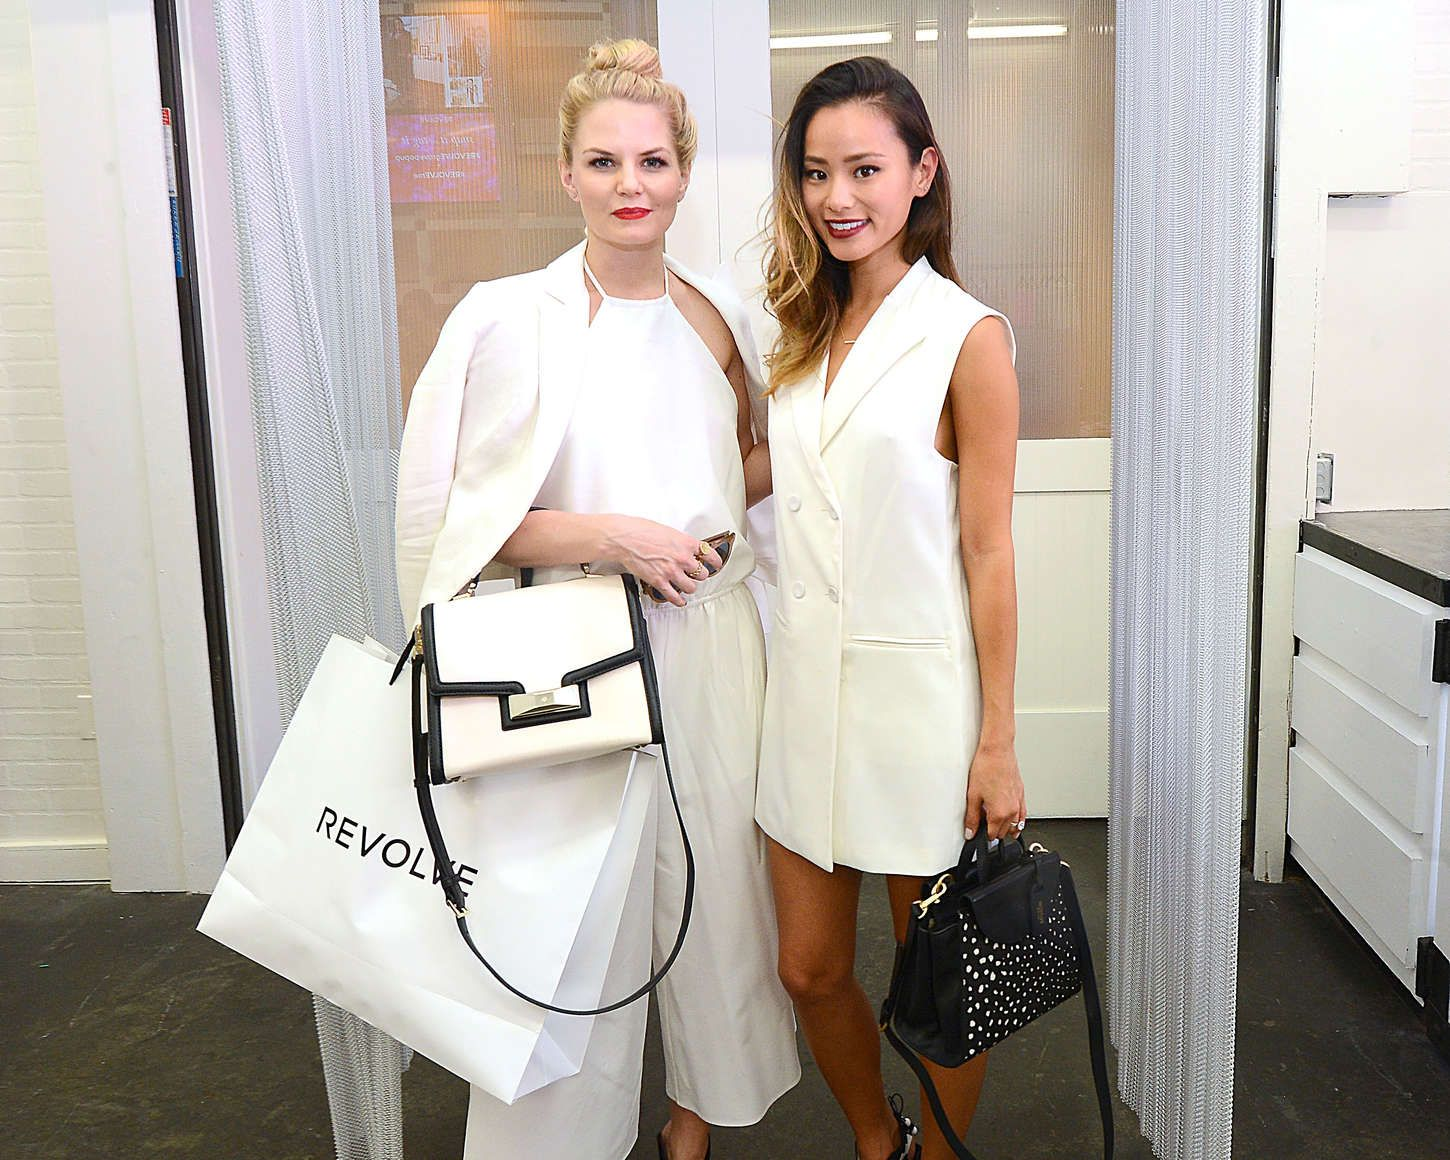 Jennifer Morrison and Jamie Chung Shopping Day at The Revolve PopUp Store on November 8, 2014